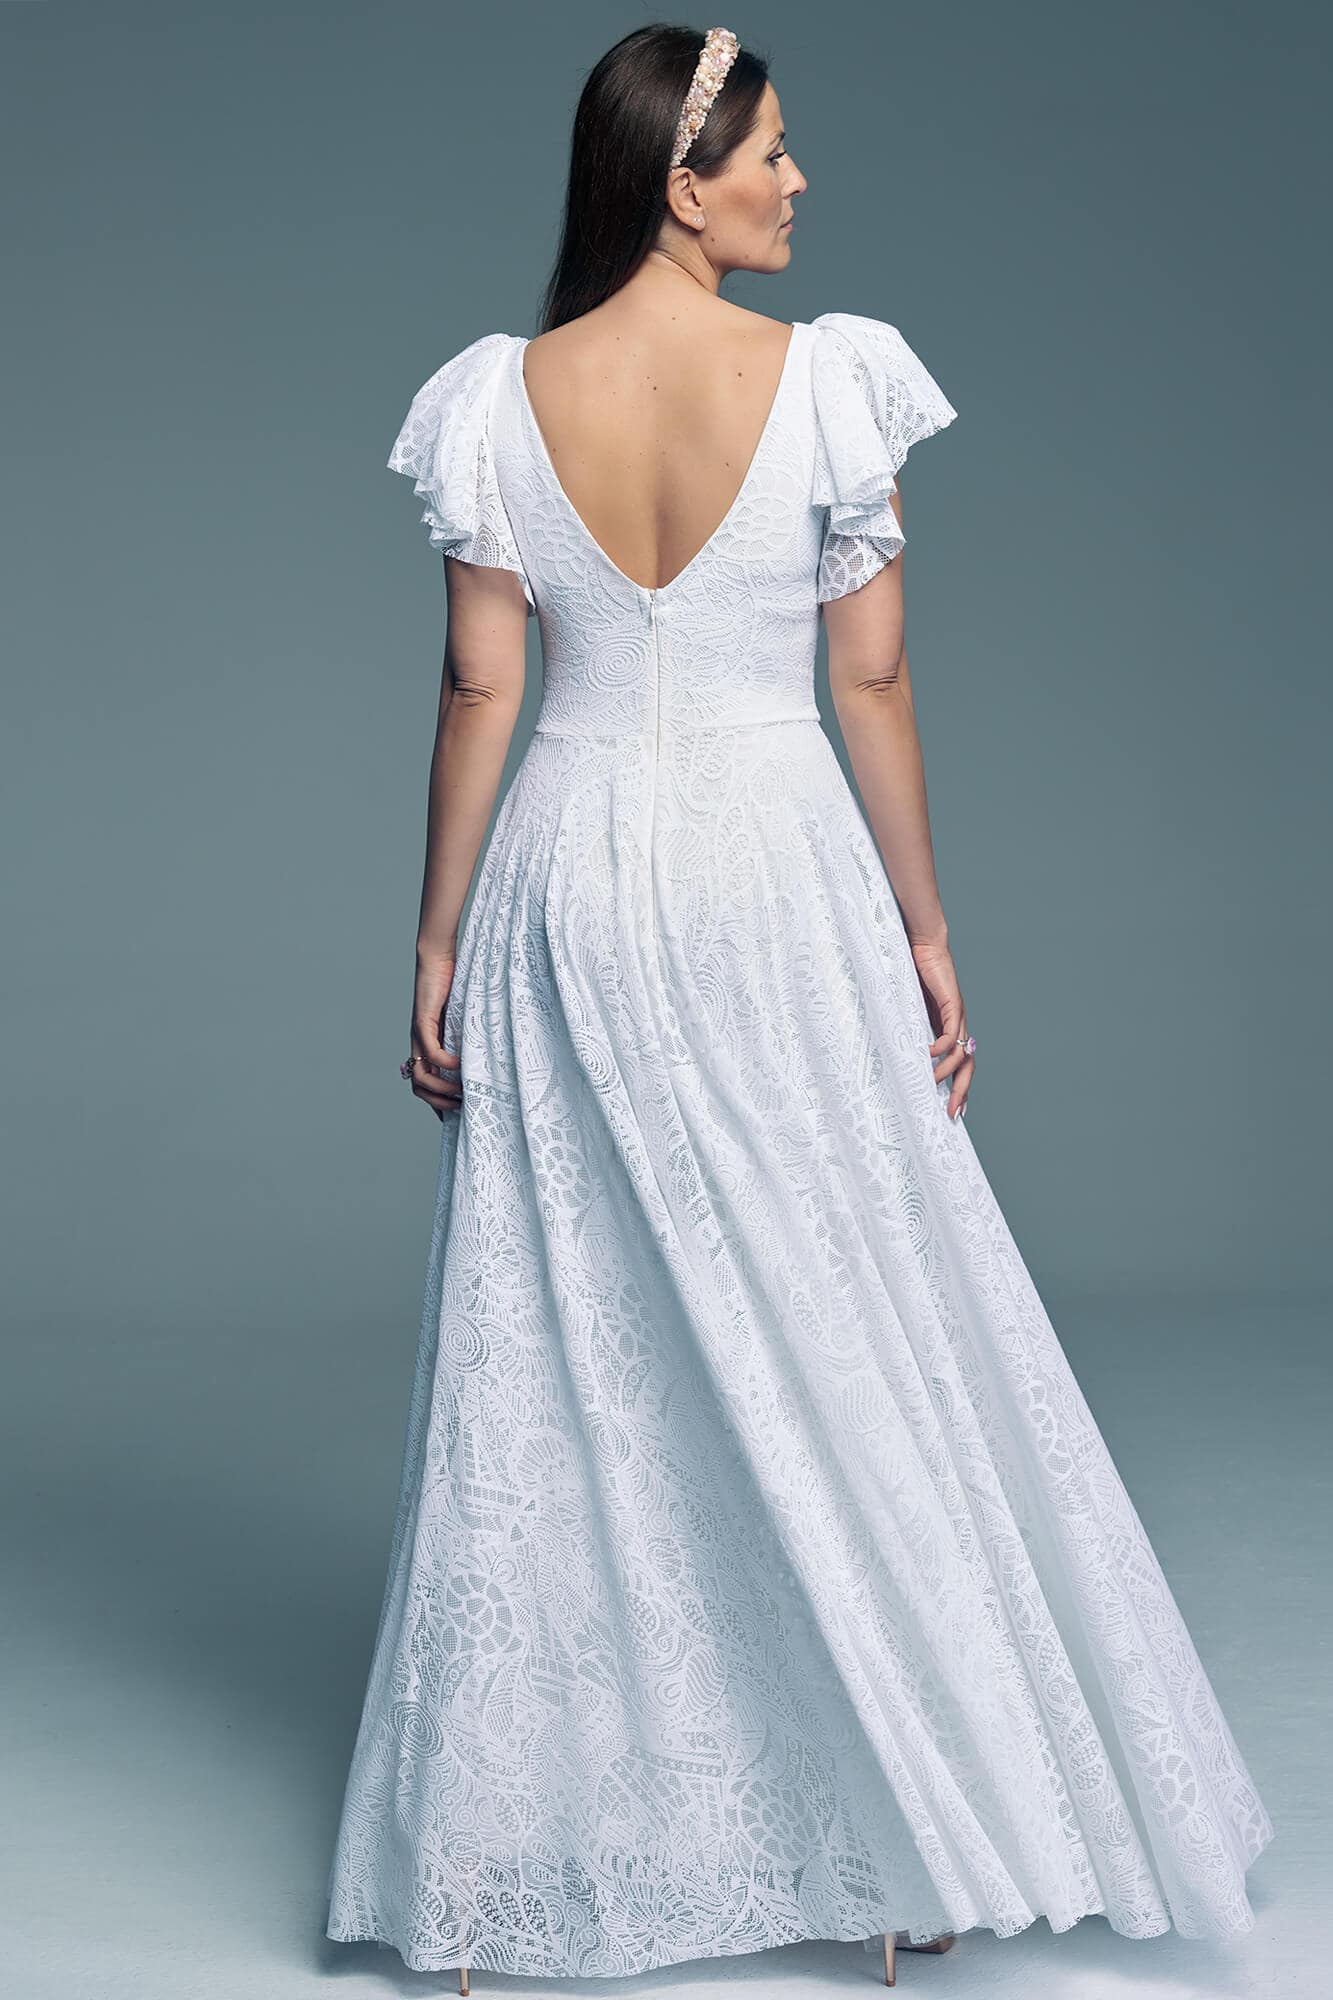 Wedding dress with lace and unique sleeves Santorini 12